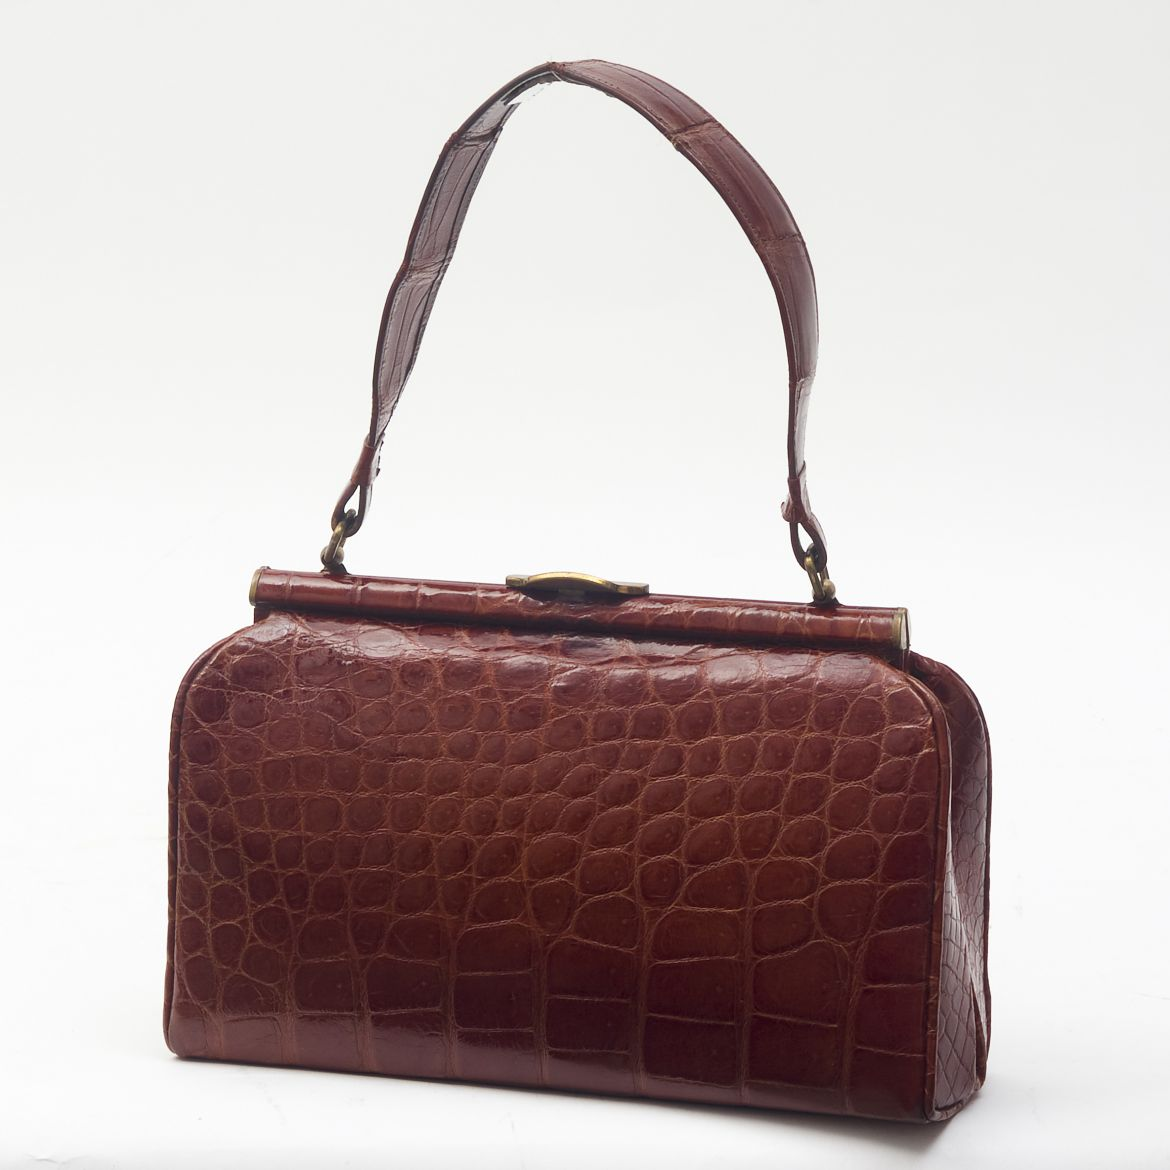 48141 brown handbag